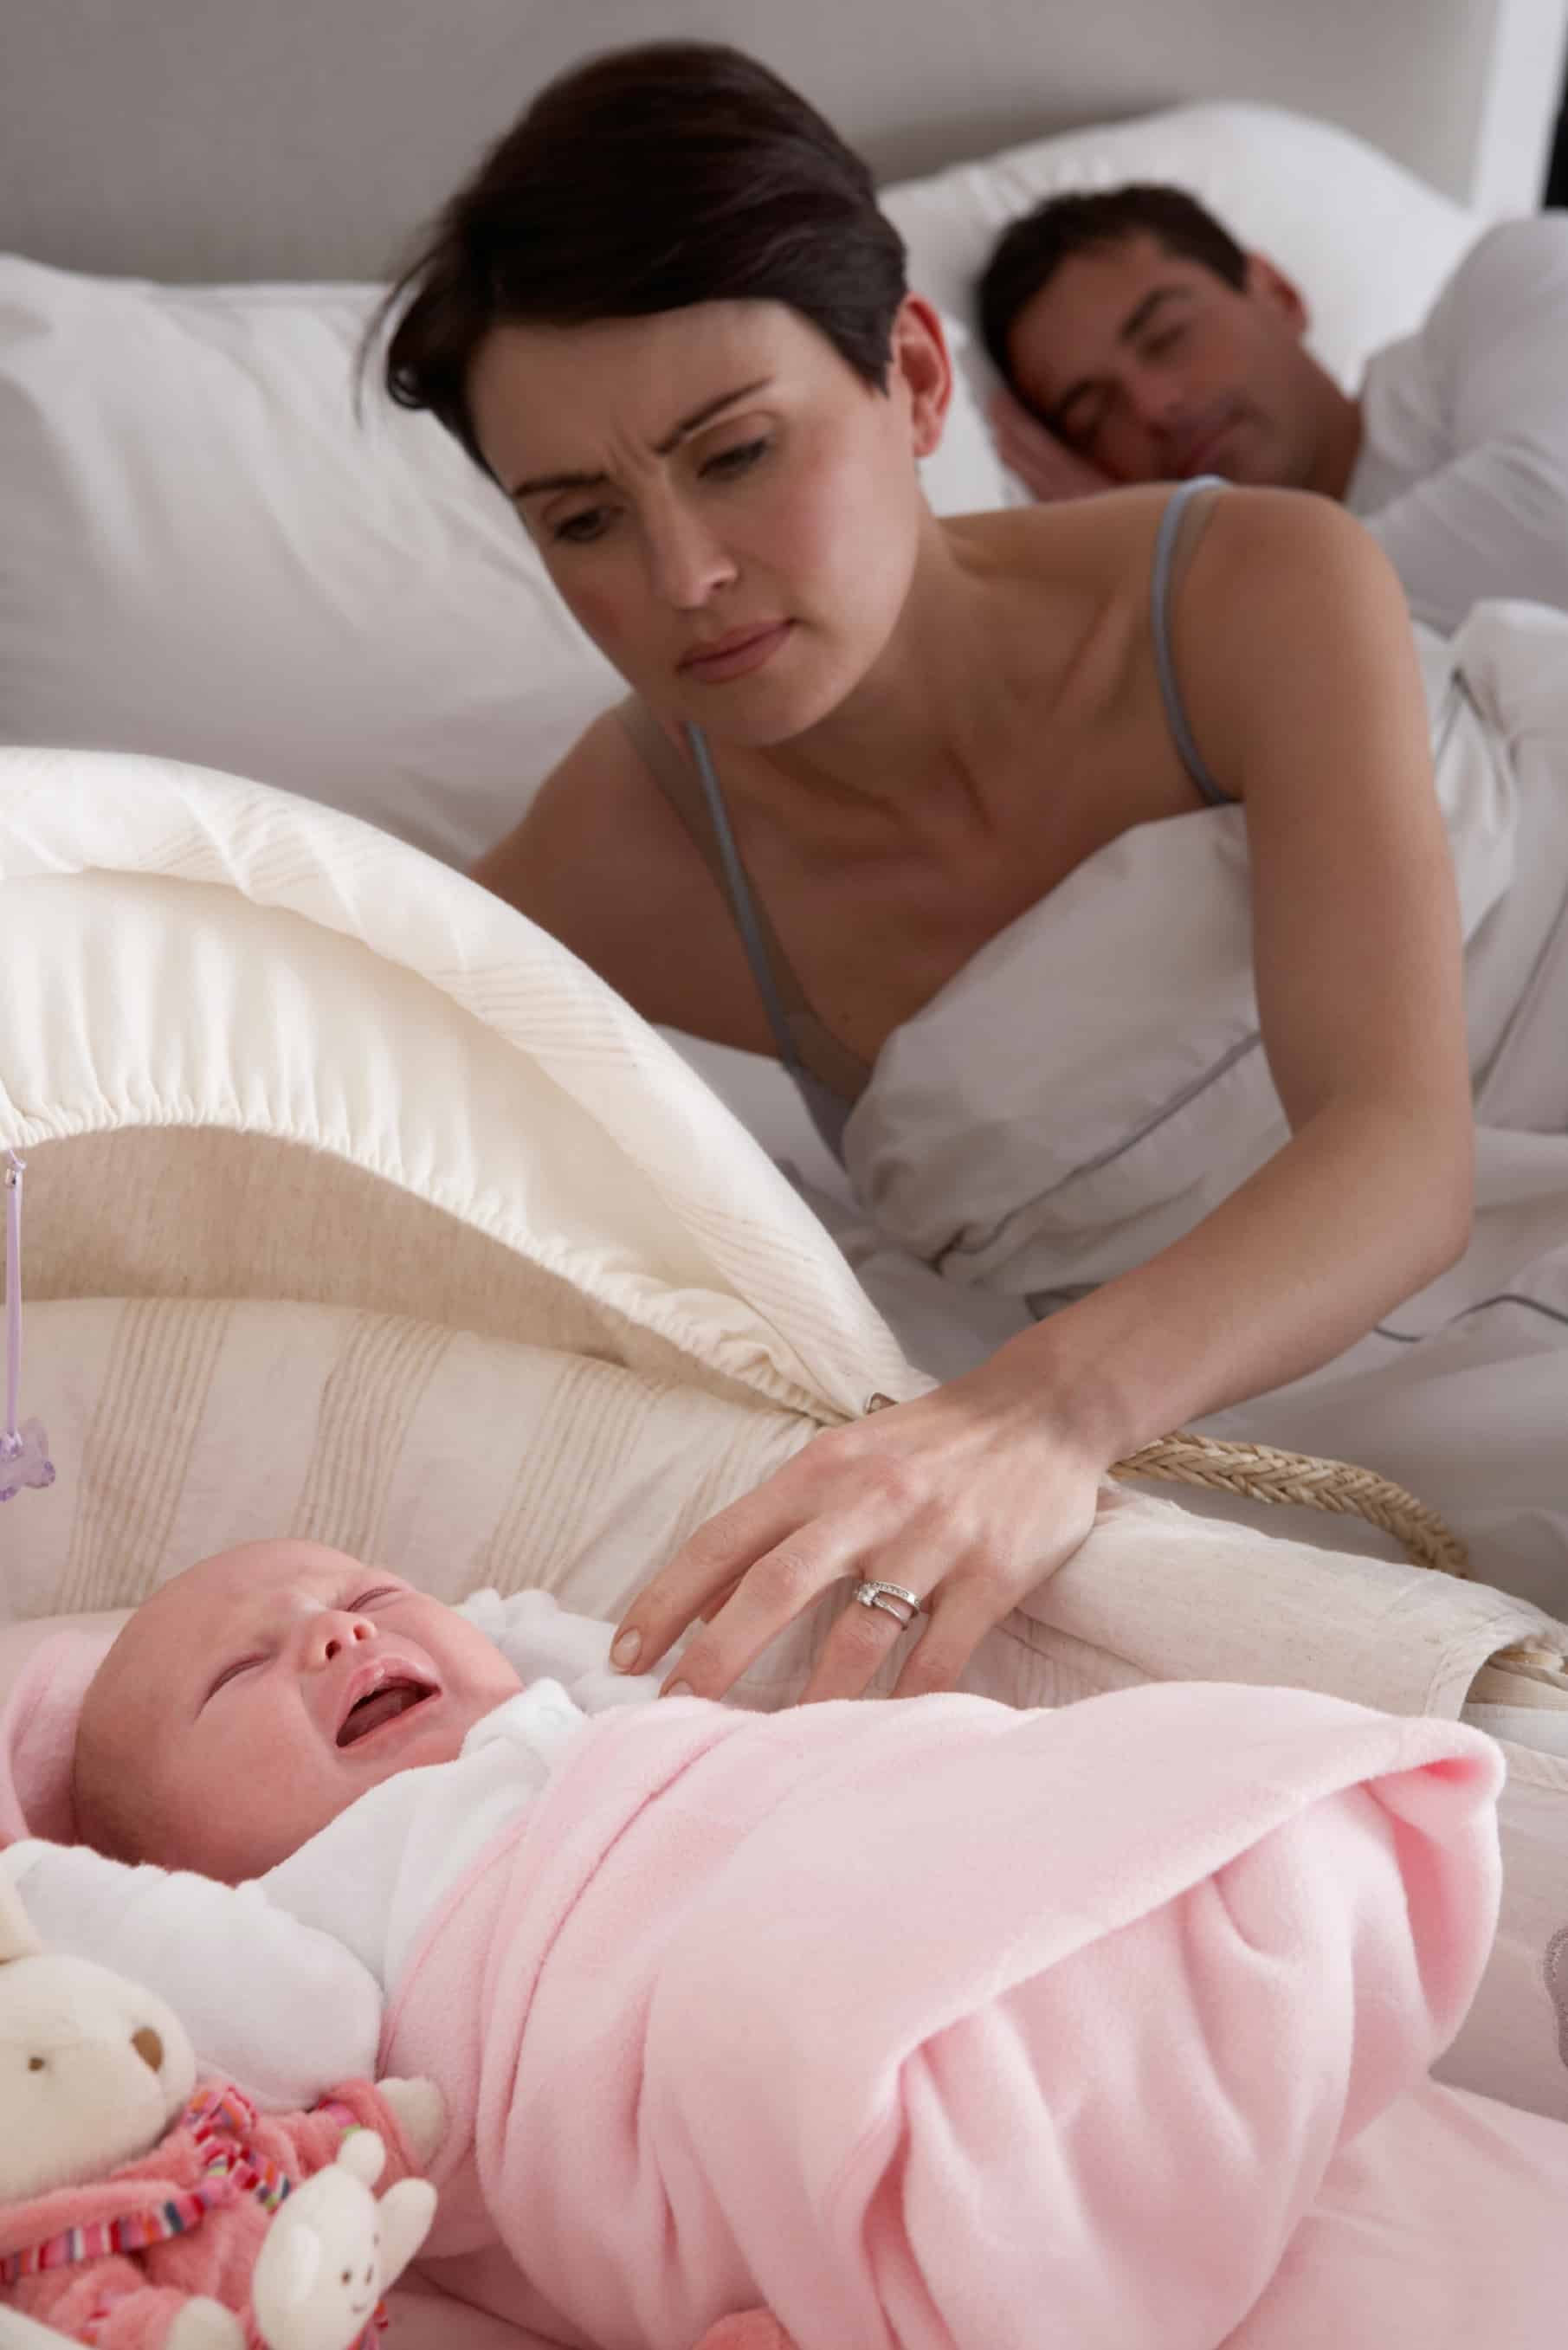 Newborn-Baby-Crying-In-Parents-Bedroom-000017068131_Large